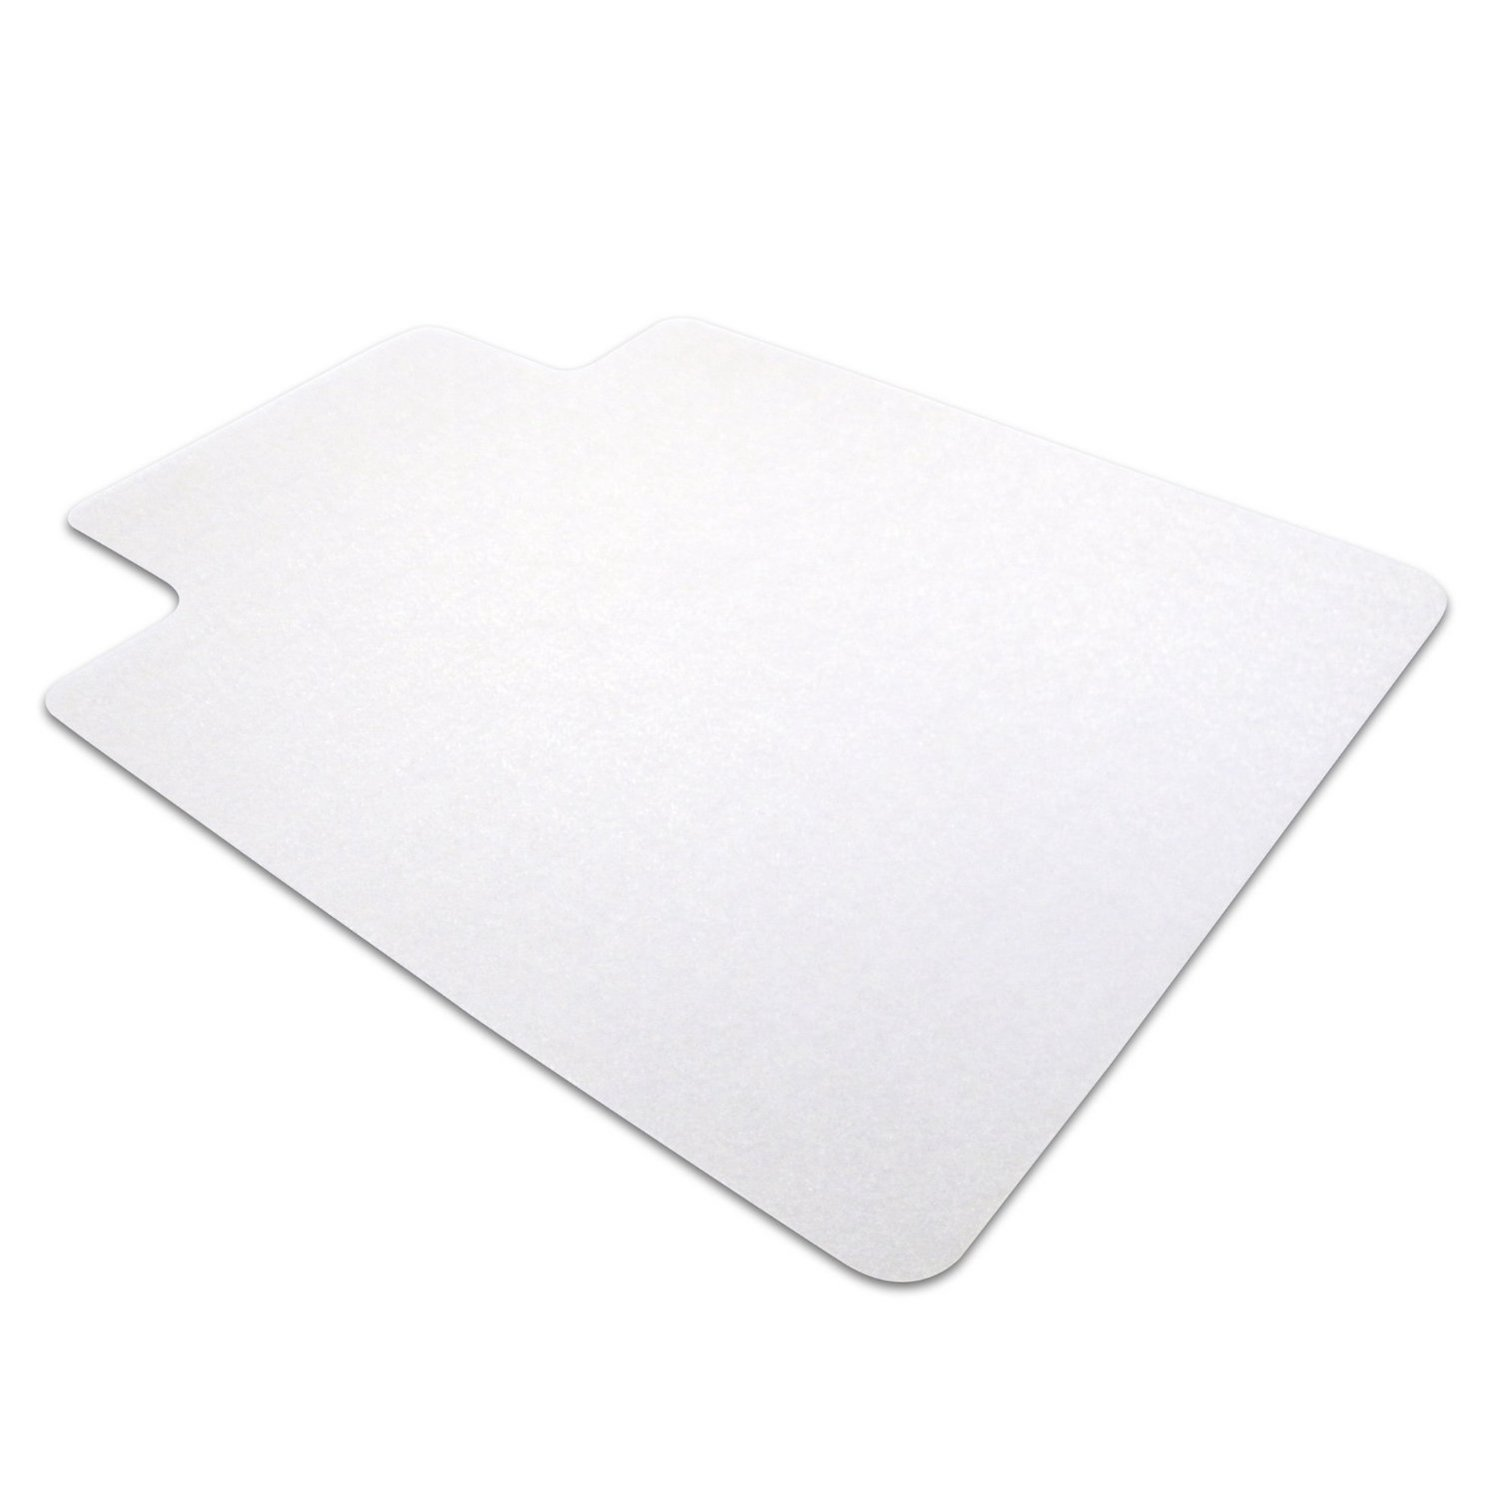 Floortex Phthalate Free PVC Chair Mat for Hard Floors, Rectangular, 48 x 60 (FRPF1215225EV)